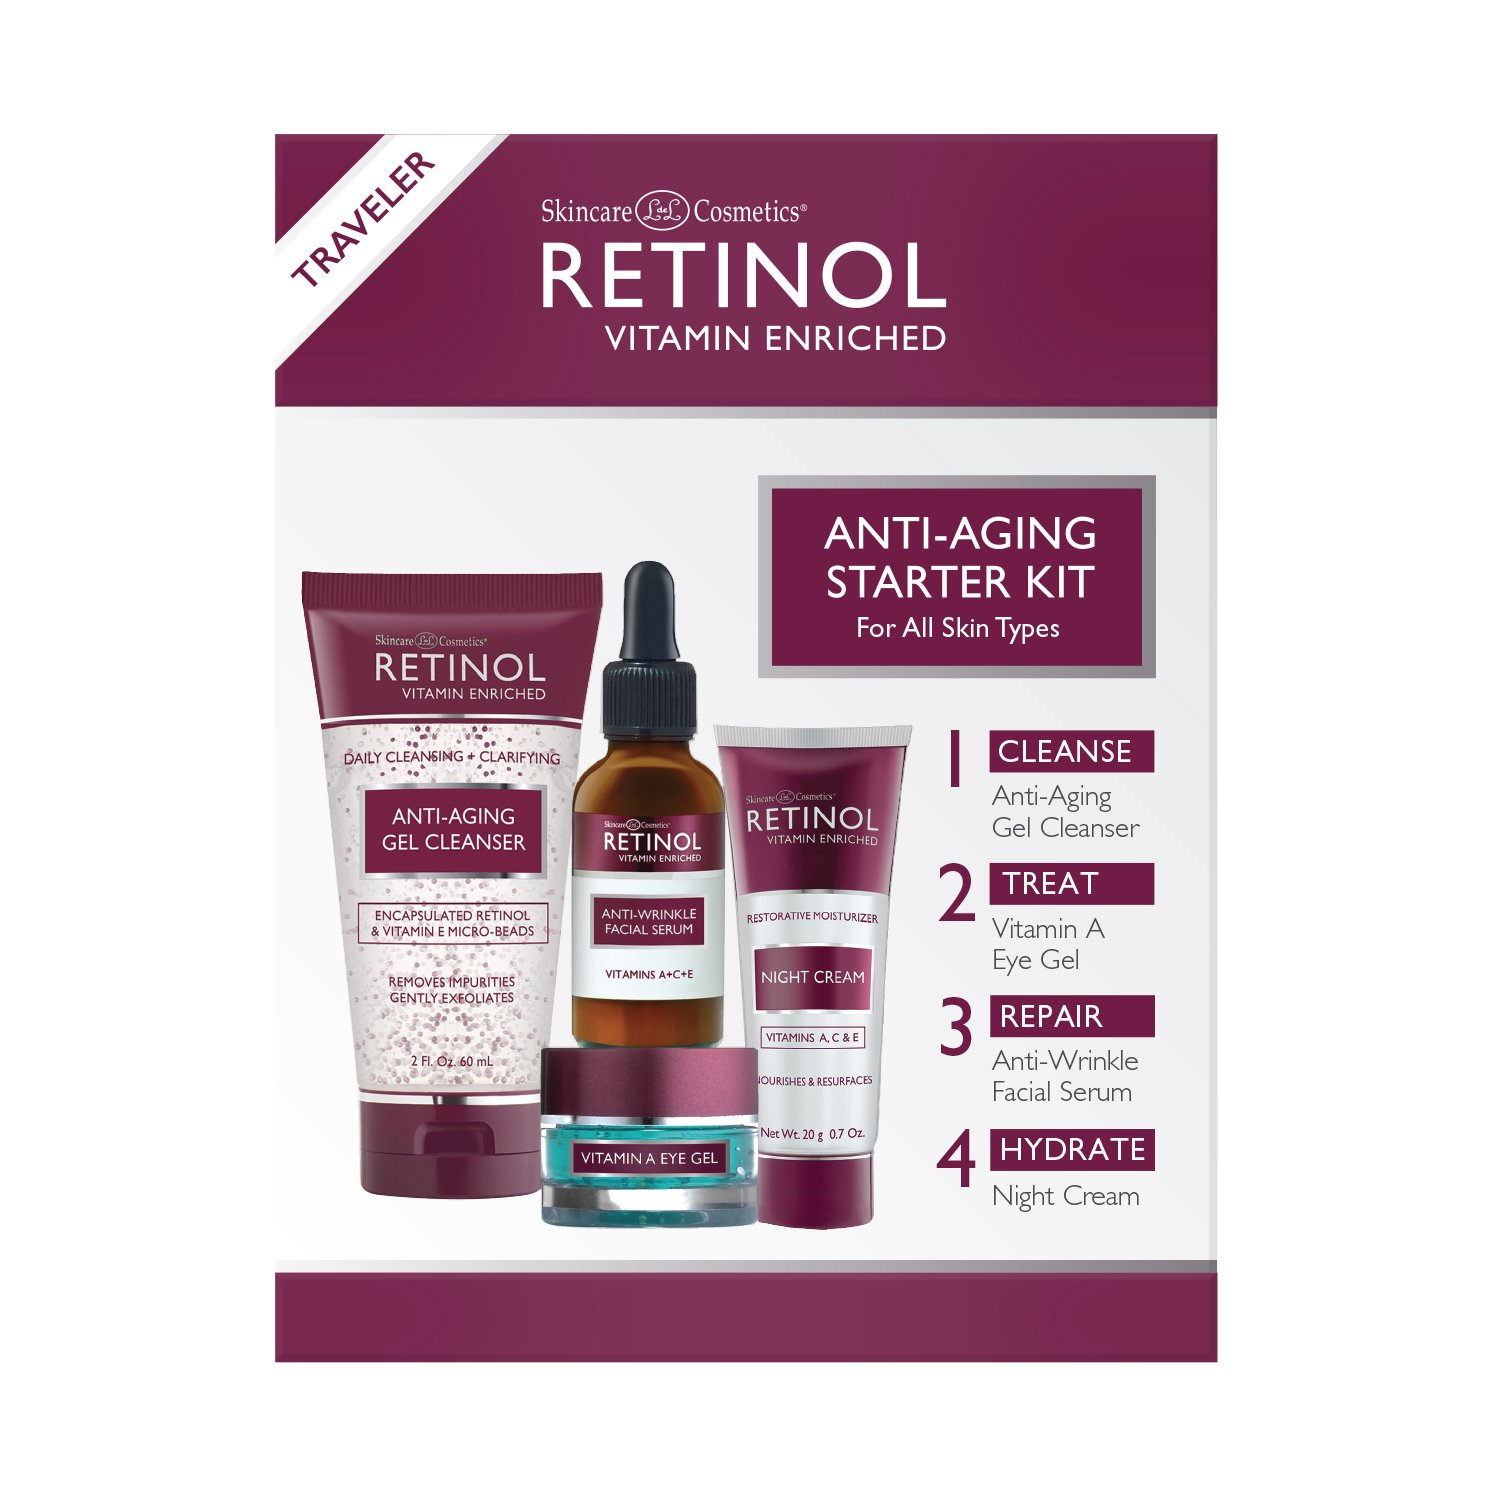 Retinol Anti-Aging Starter Kit - The Original Retinol For a Younger Look - [4] Conveniently Sized Products Perfect For Travel or First Time Try - Cleanse, Treat, Repair & Hydrate On-The-Go by Retinol